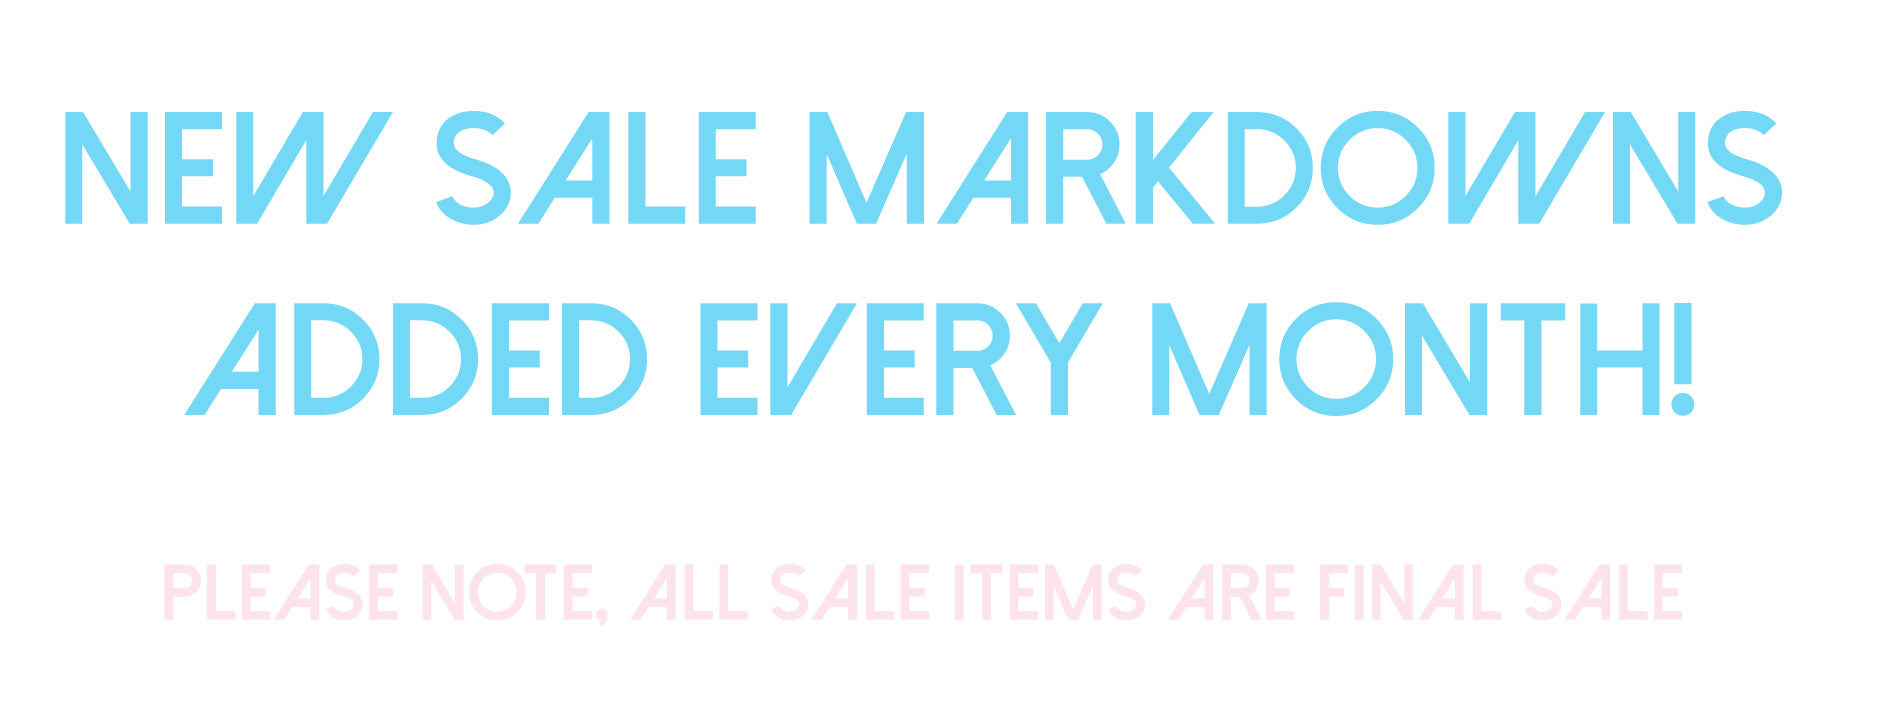 NEW SALE MARKDOWNS ADDED EVERY MONTH!  Please note, all sale items are final sale  VIEW AS GRID VIEW LIST VIEW SORT BY